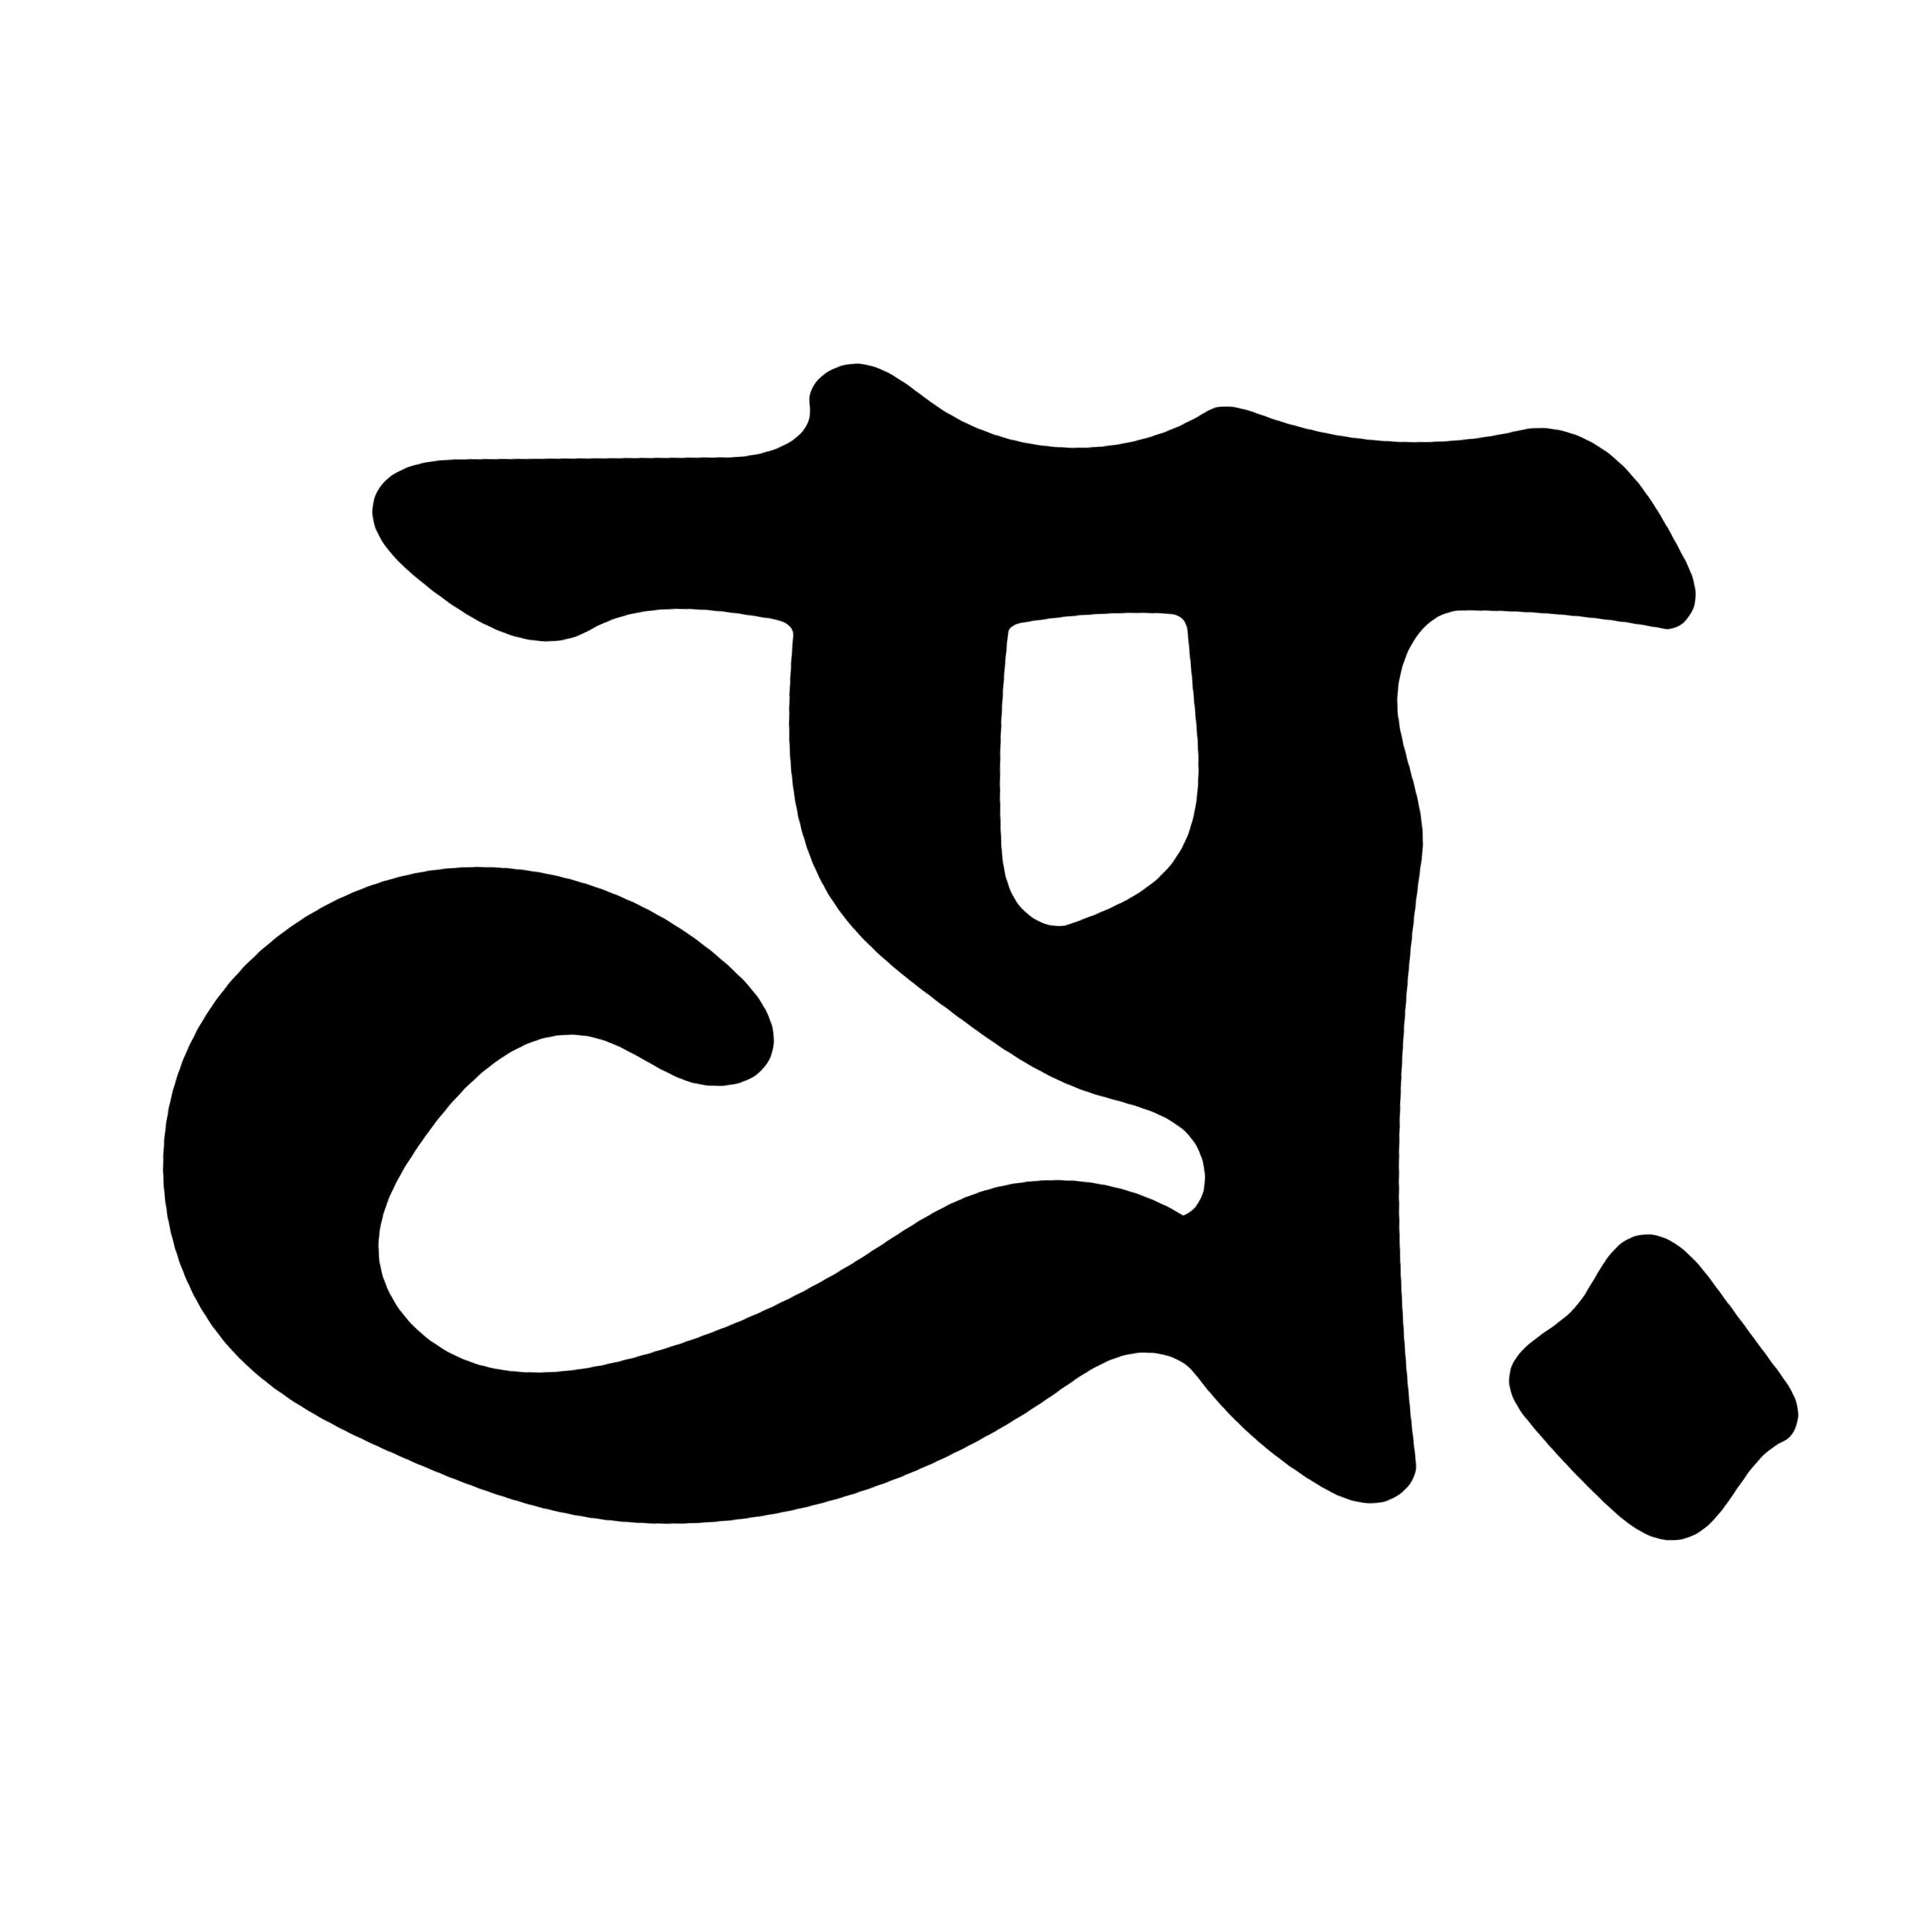 Marathi Calligraphy By Vishant Chandra Website Vishantchandra